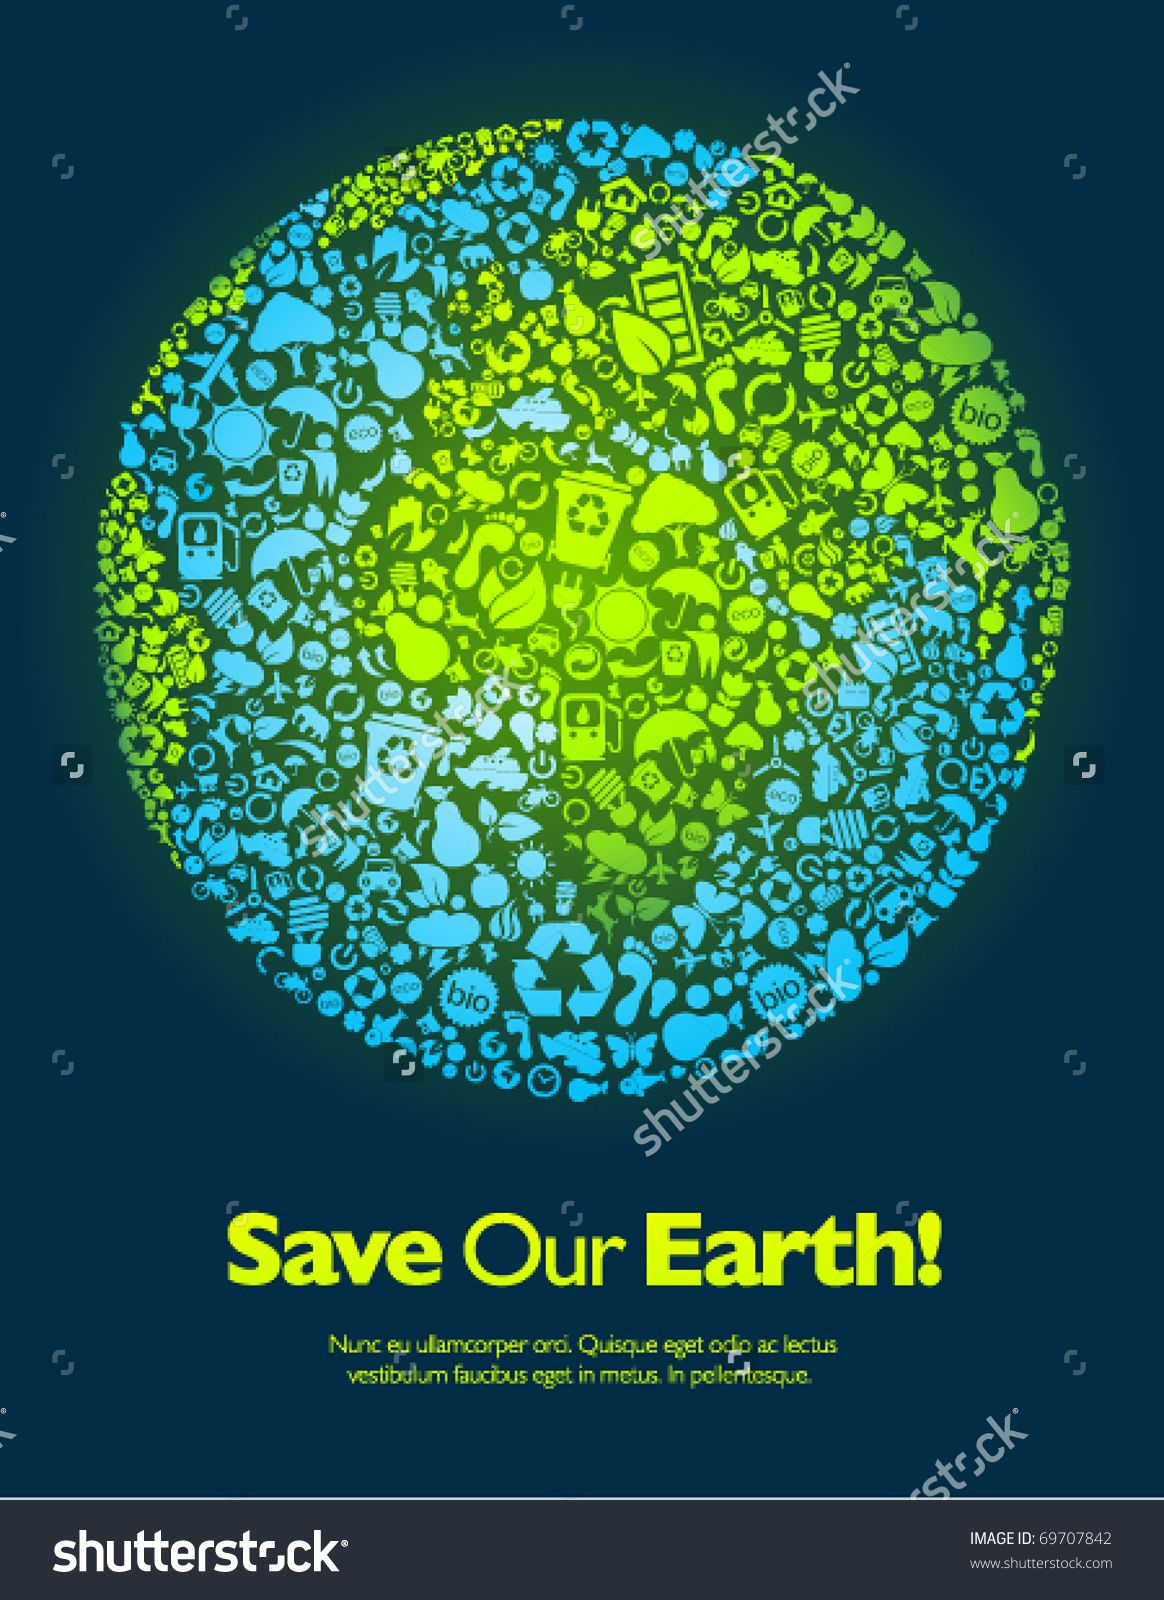 Poster design on save earth - Save The Earth Poster Art Google Search